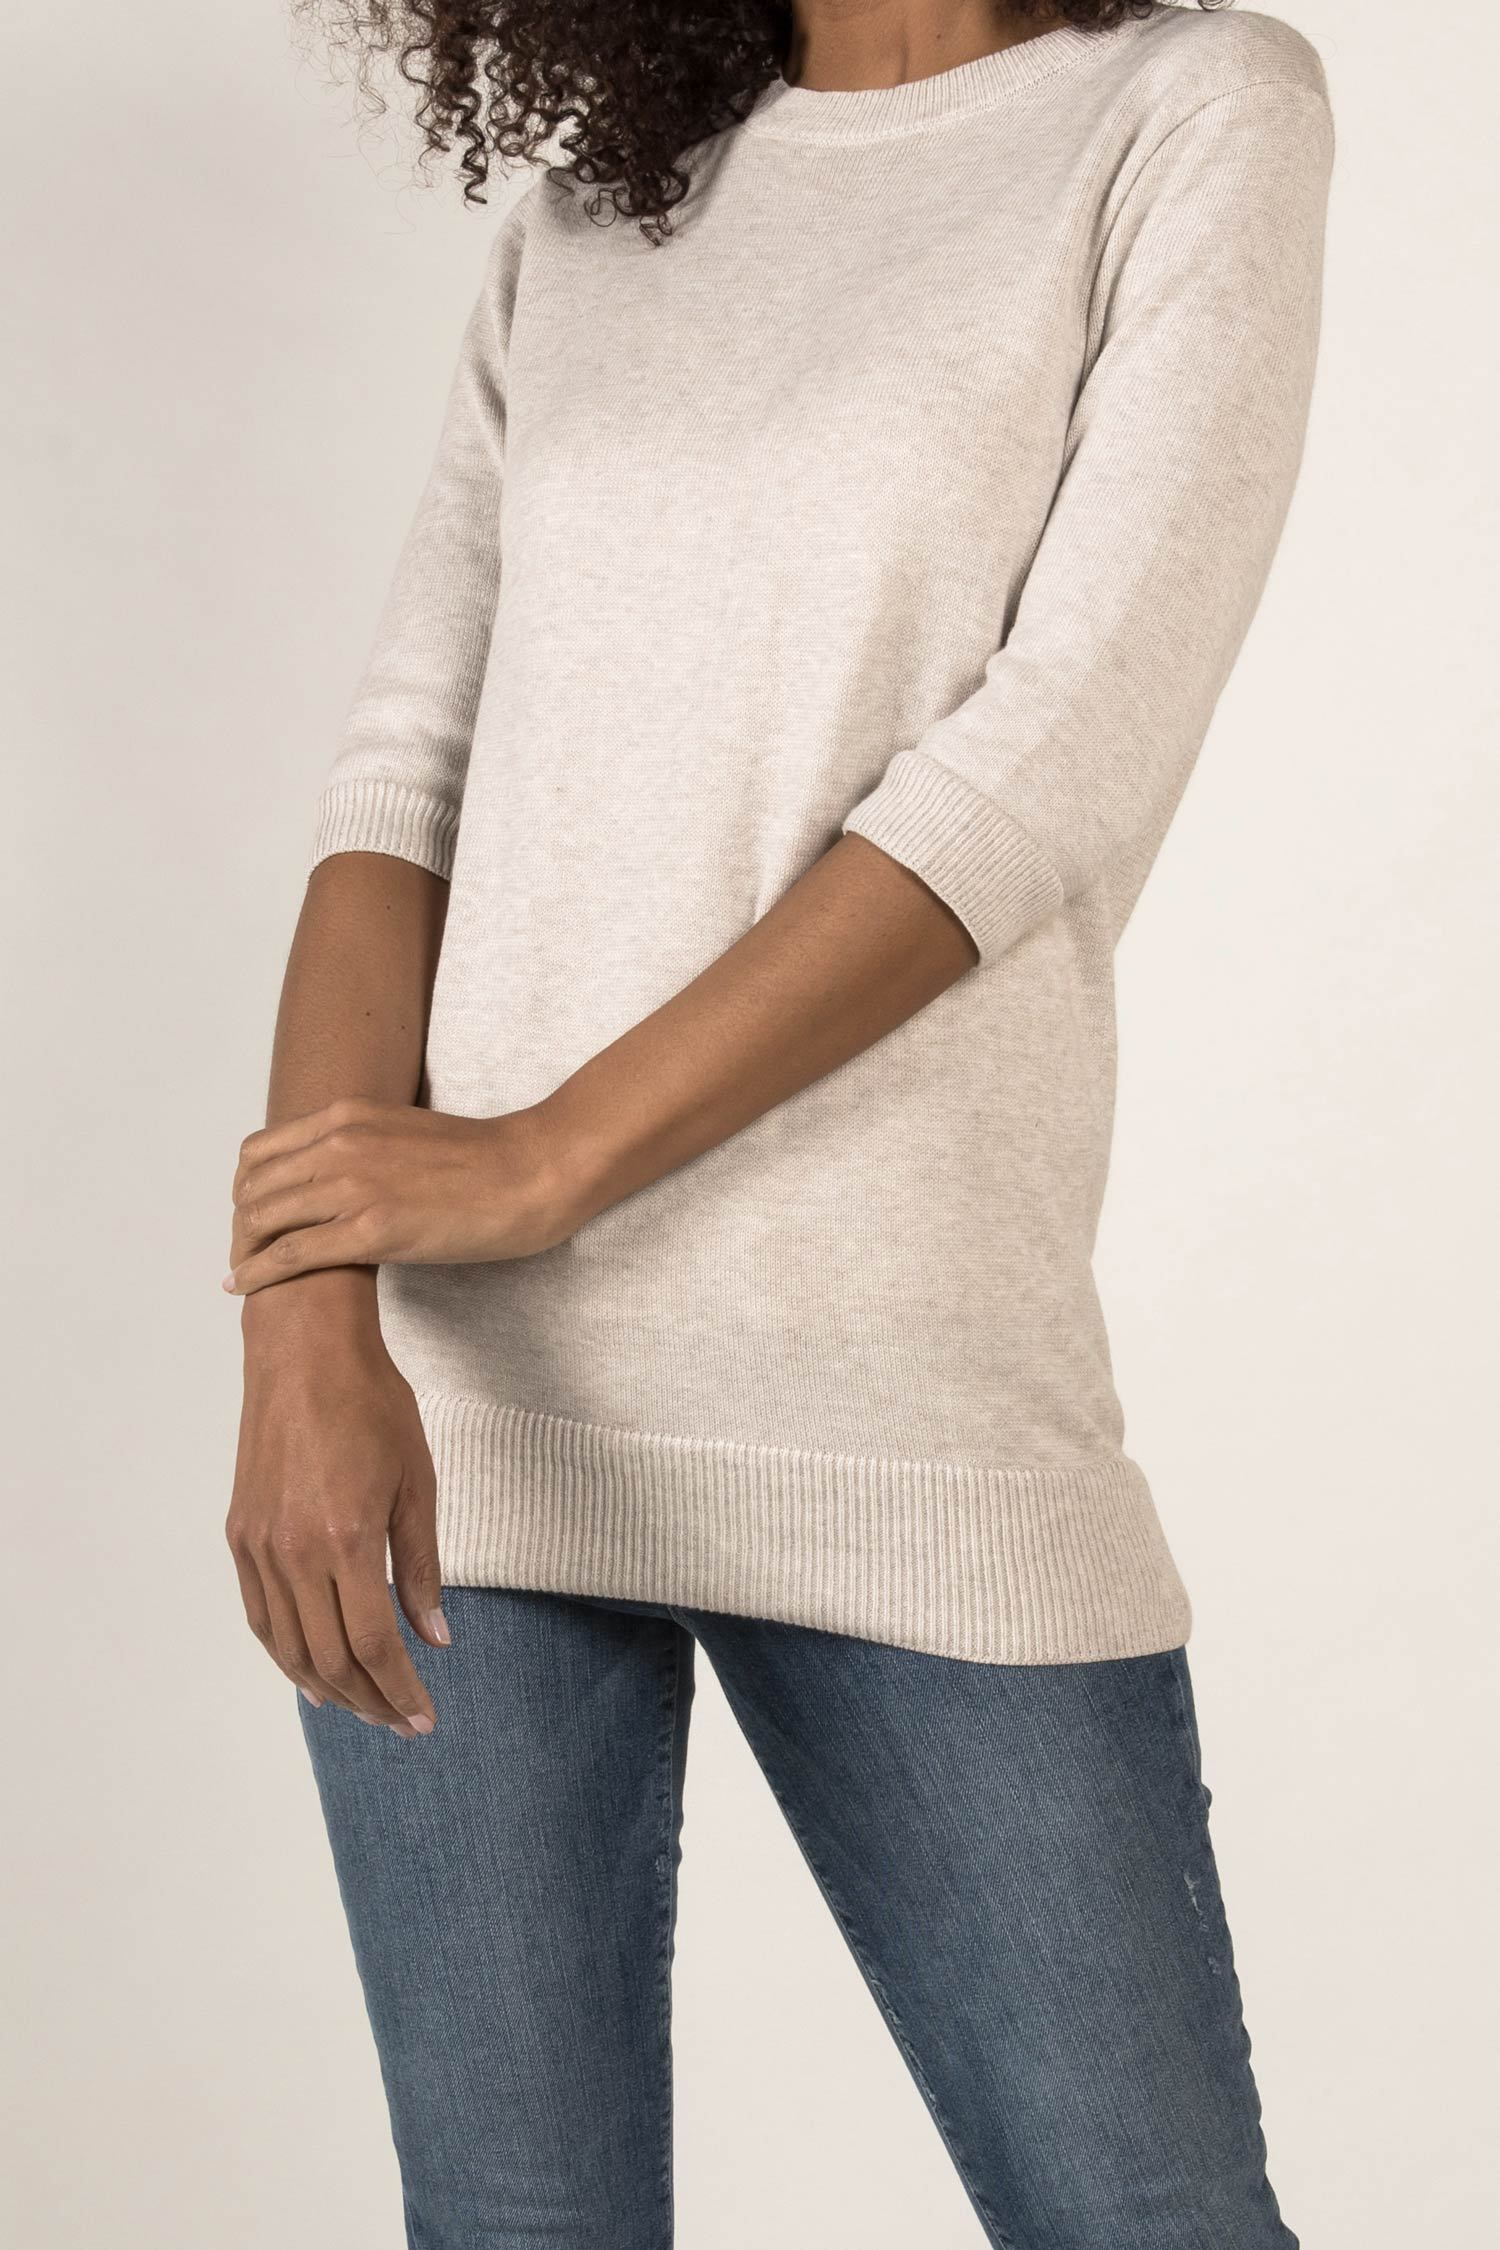 Womens Organic Cotton Top | Knit Elbow Sleeve Tunic Sweater | Oatmeal White